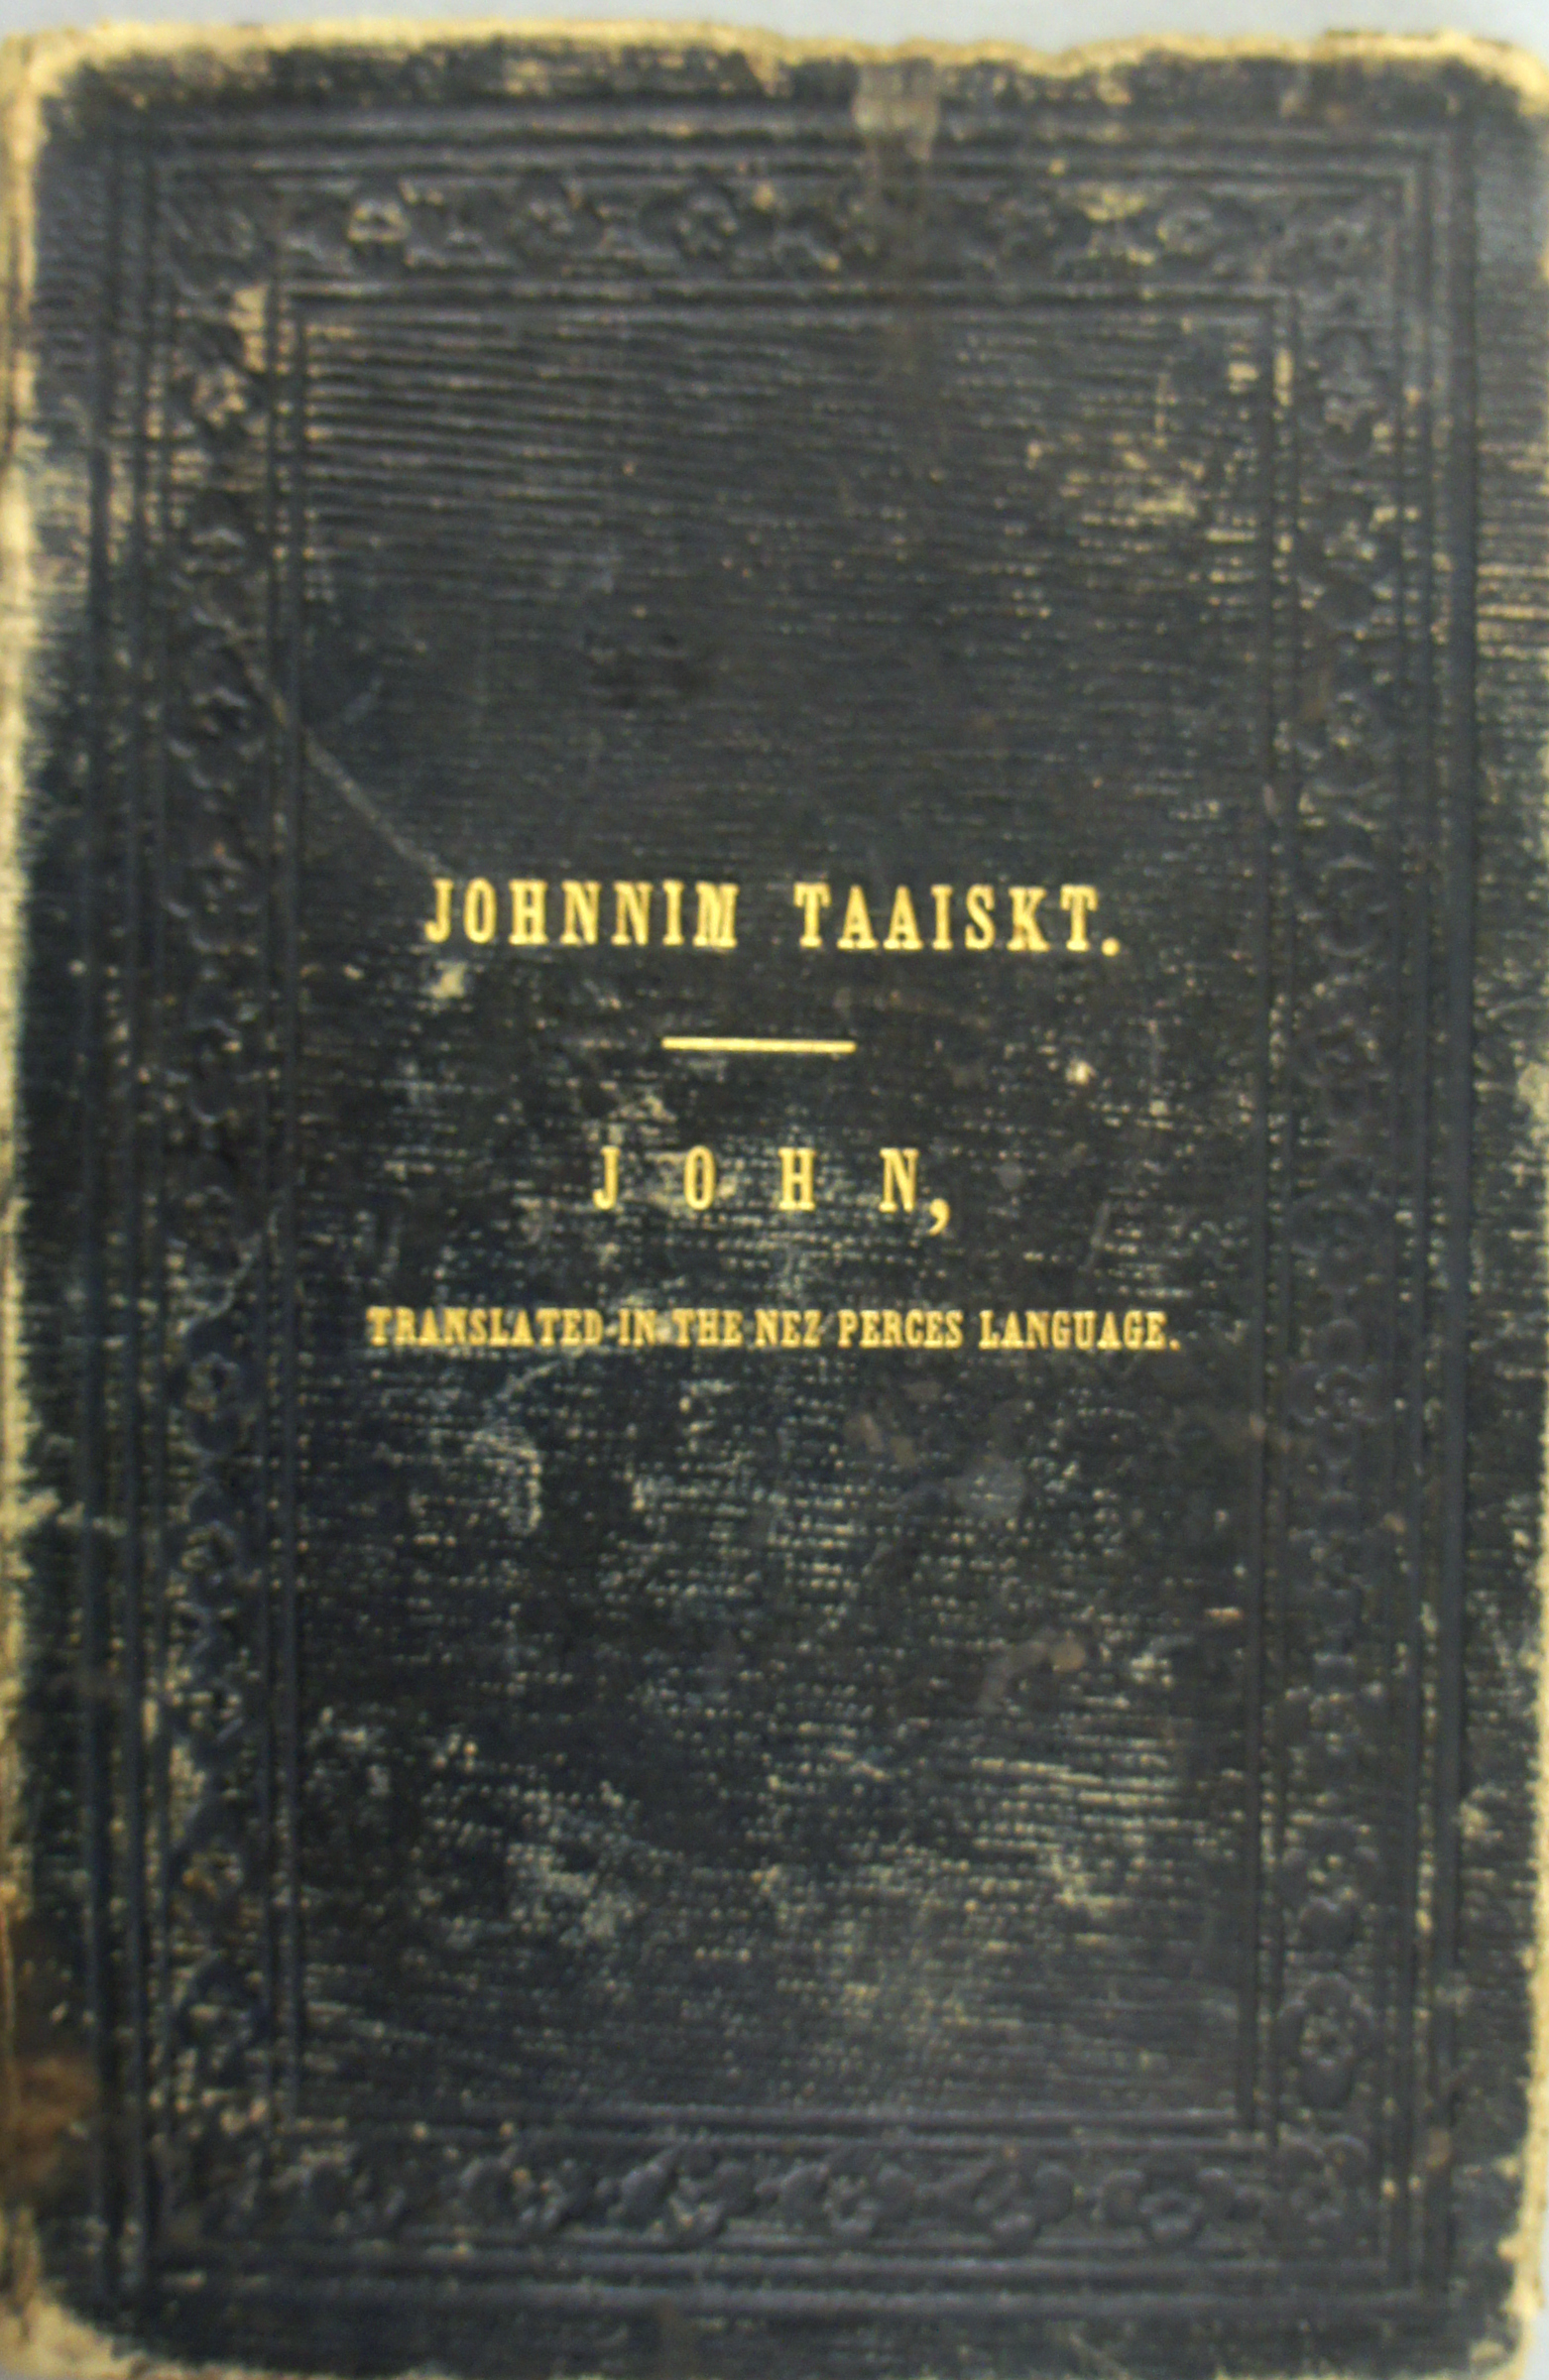 Johnnim Taaiskt